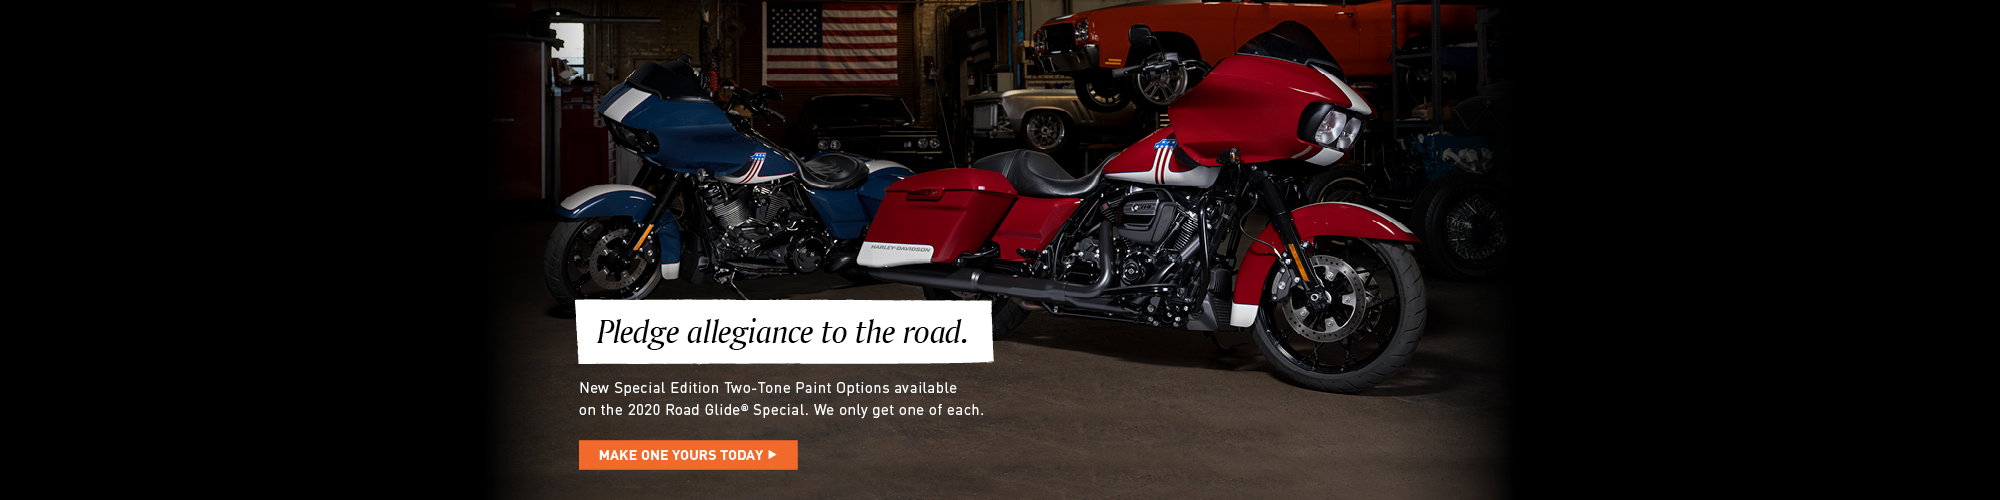 Road Glide Special 2-tone paint at Texas Harley-Davidson